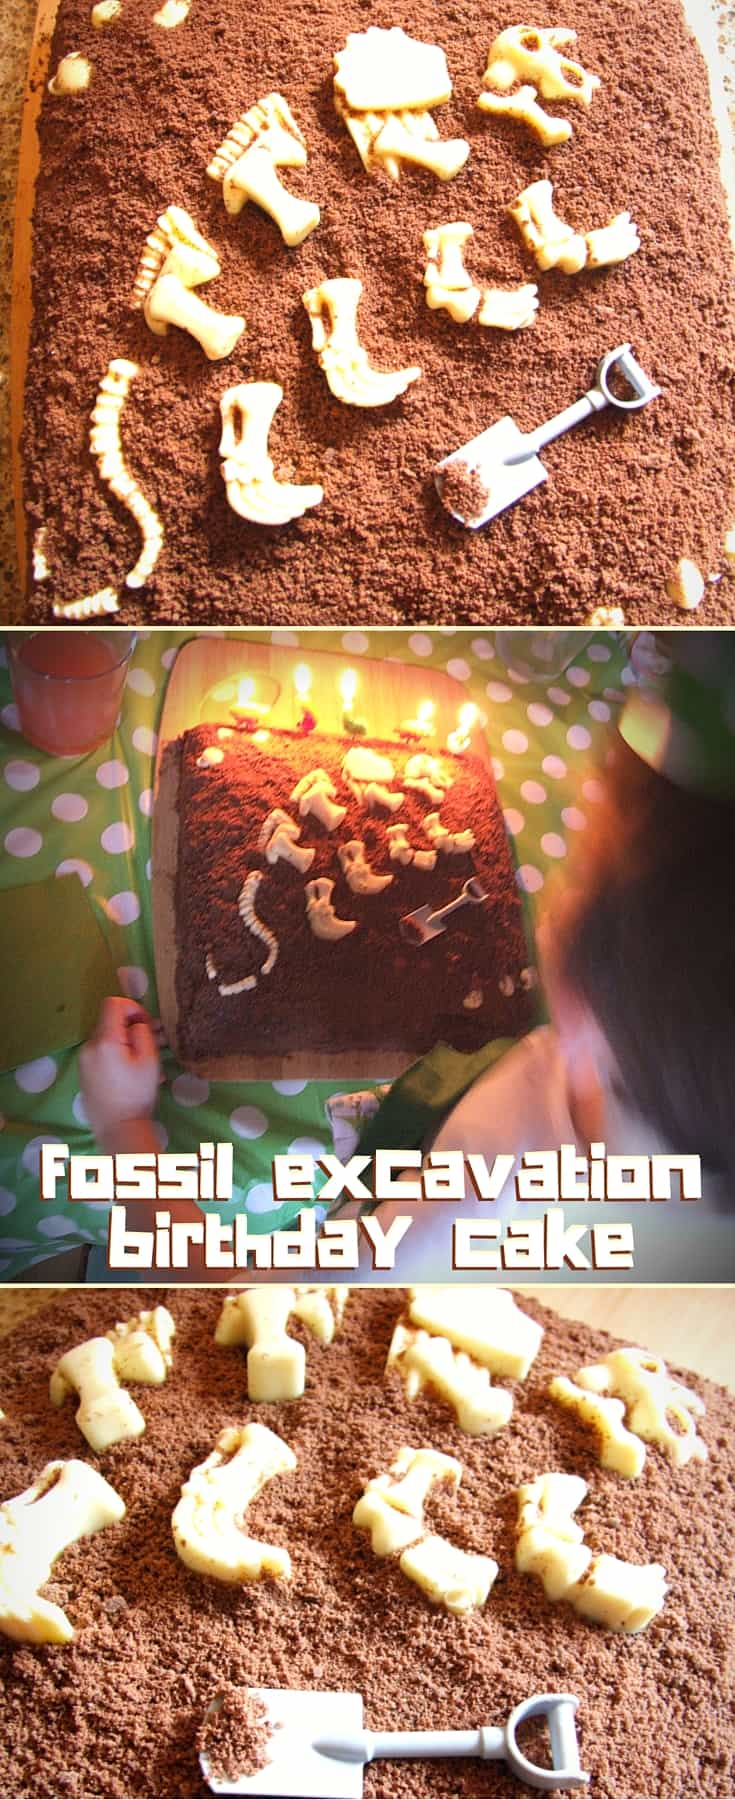 Dinosaur fossil excavation birthday cake - chocolate sponge cake, decorated with chocolate 'dirt' and white chocolate 'fossils'. Perfect for your budding palaeontologist!